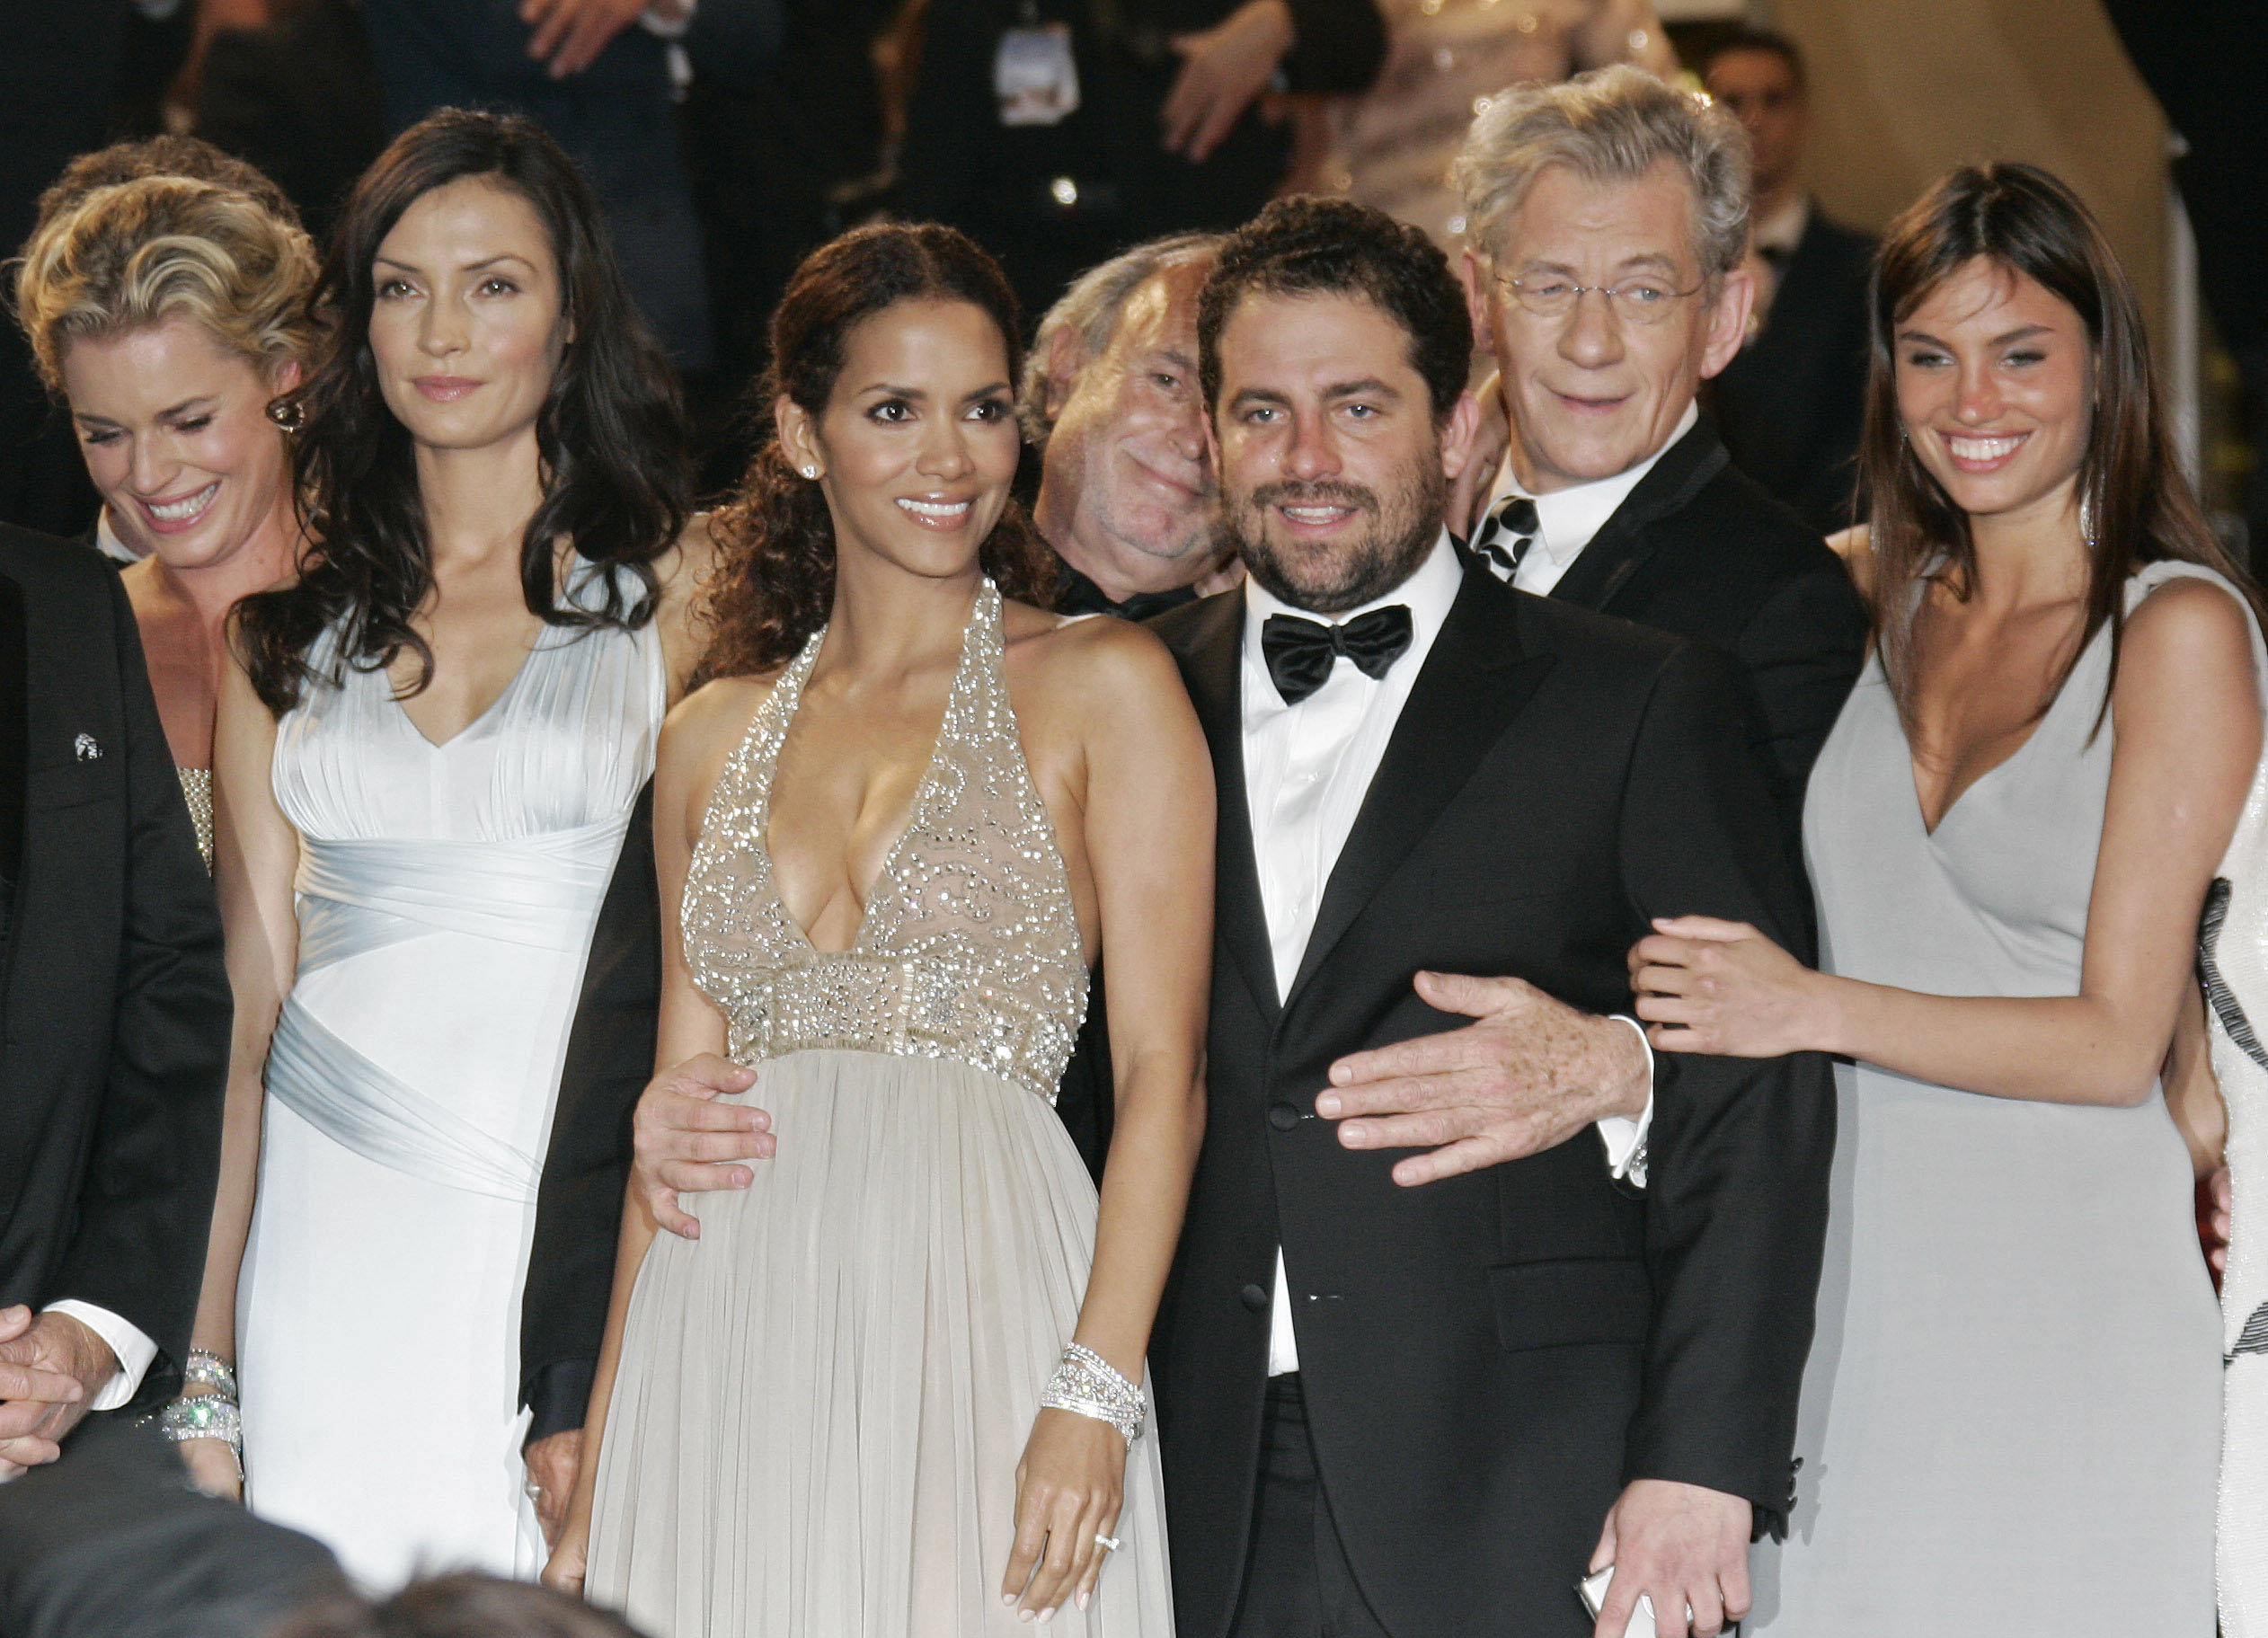 From left, American actress Rebecca Romijn, Dutch actress Famke Janssen, American actress Halle Berry, American director Brett Ratner, British actor Ian McKellen, and unidentified guest arrive for the screening of the film X-Men: The Last Stand, at the 59th International film festival in Cannes, southern France, on Monday, May 22, 2006